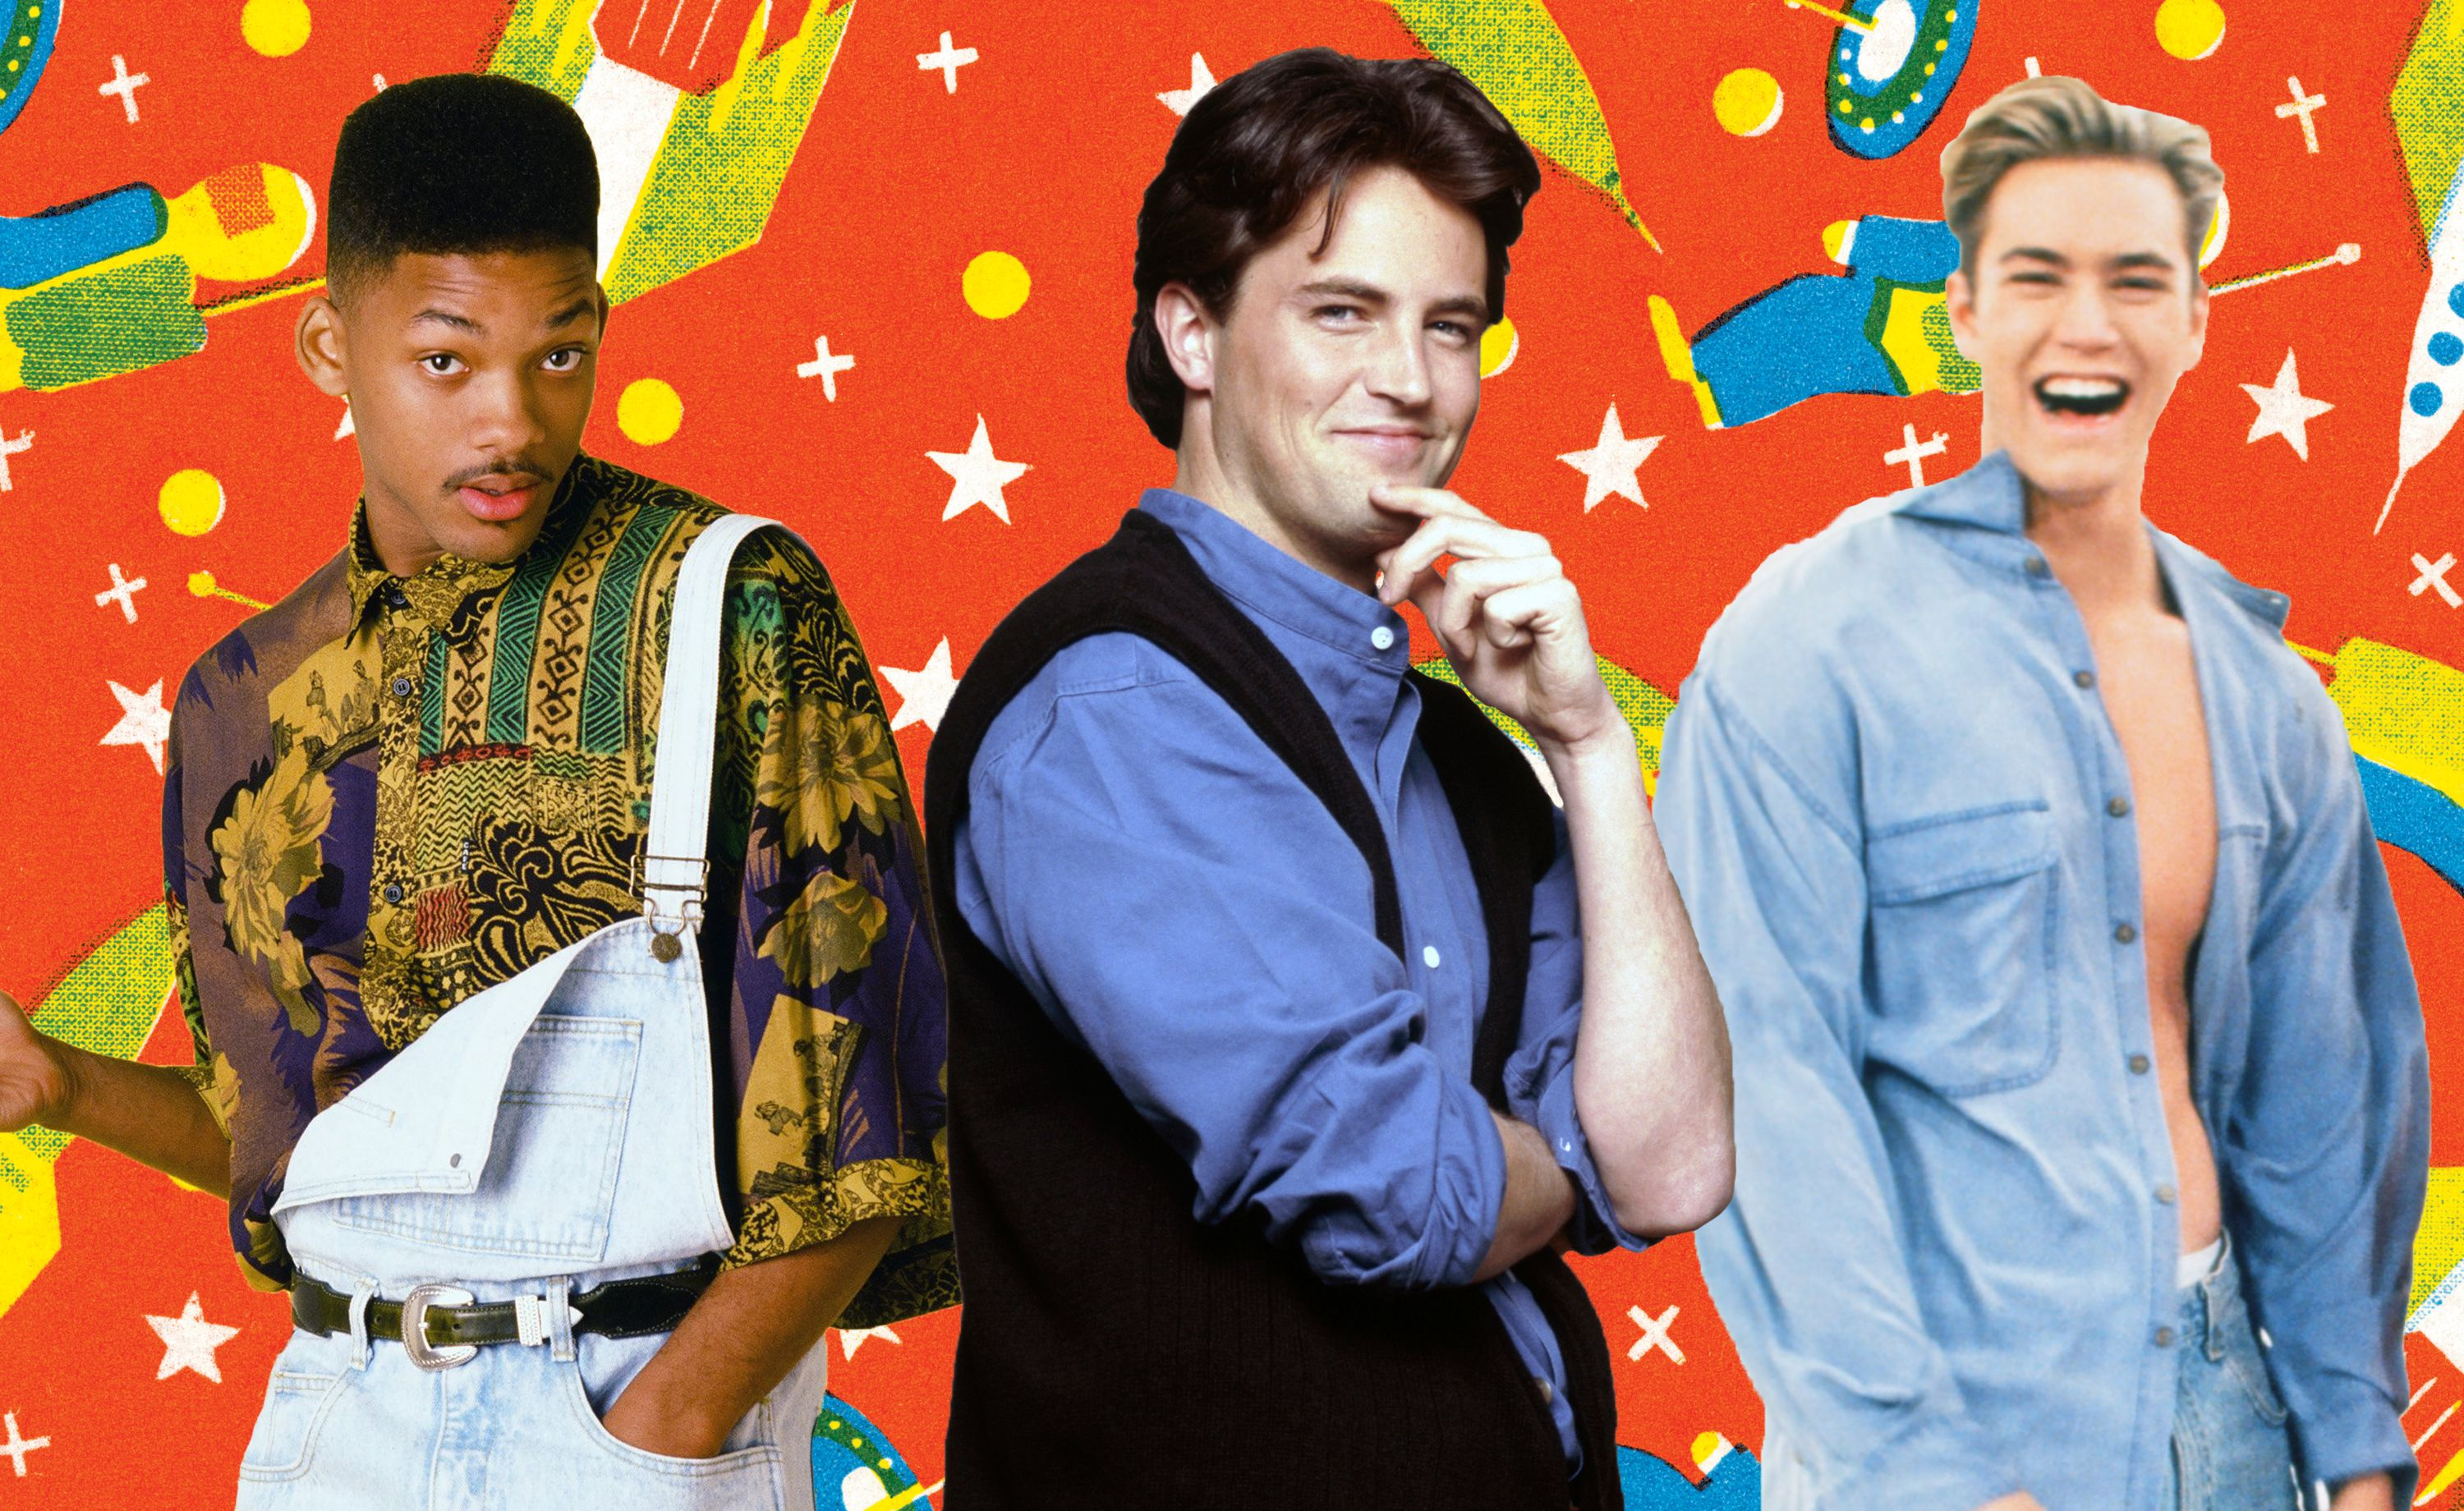 8 fashions from the '90s that we desperately tried to copy (men's